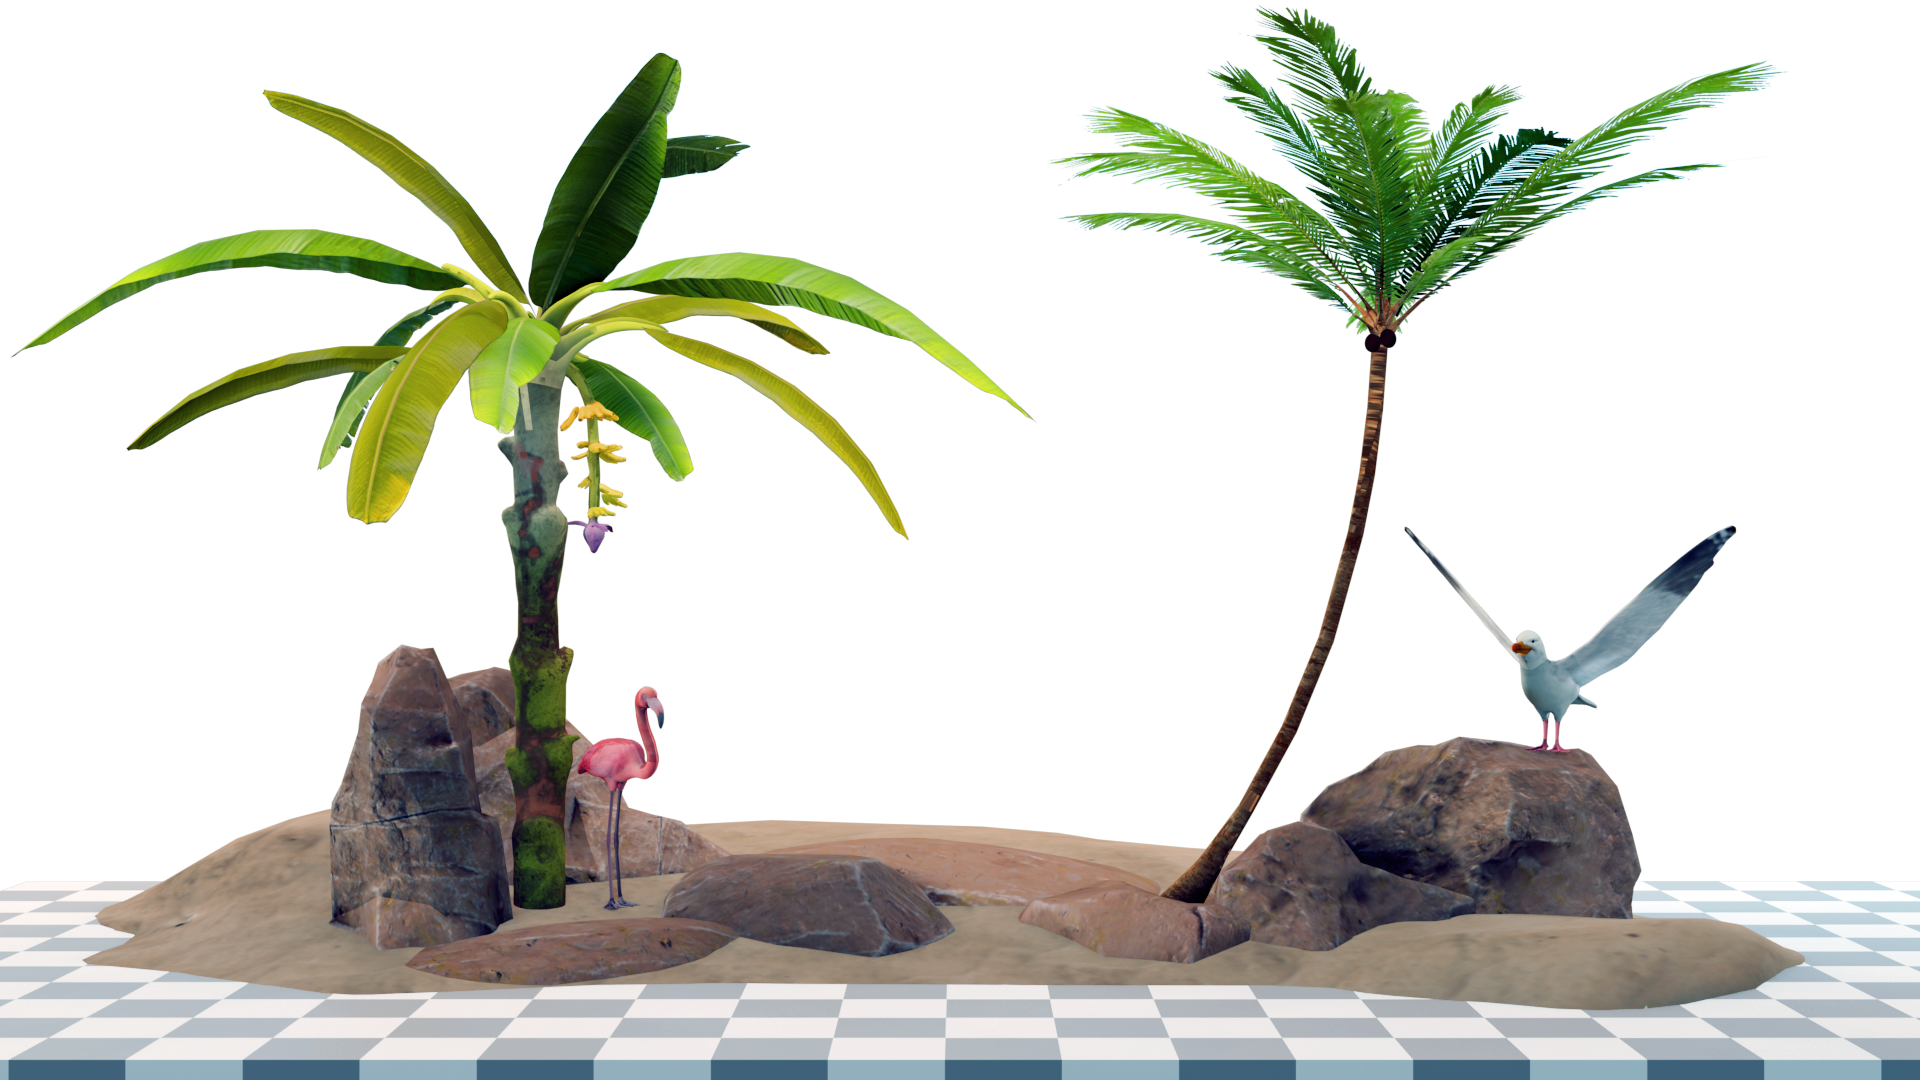 virtual reality unity island assets easysolution